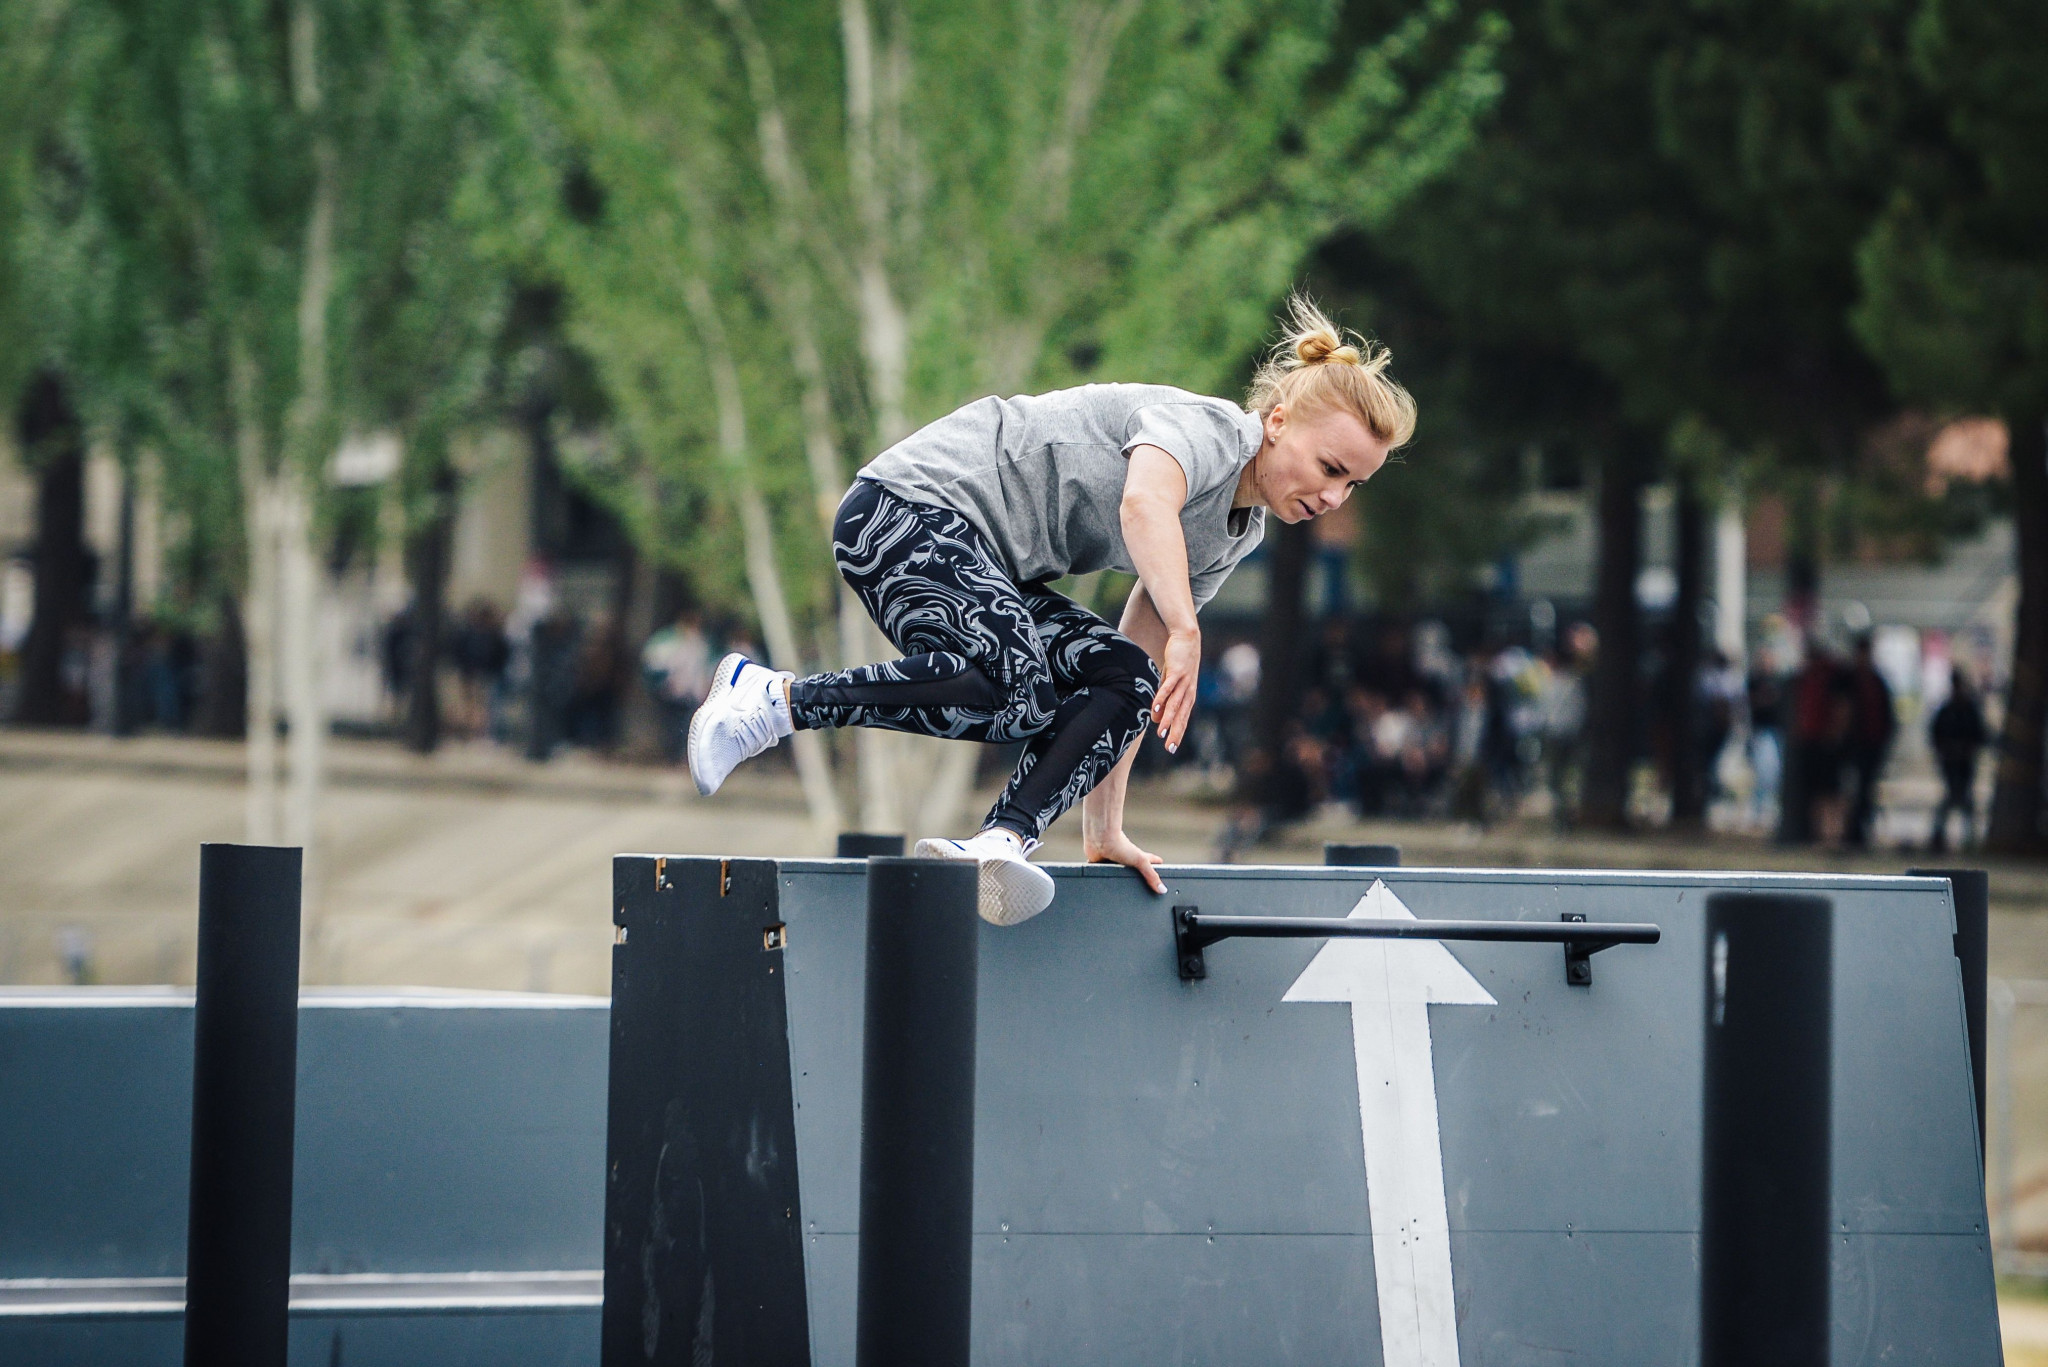 Shevchenko wows judges to win FIG Parkour Freestyle World Cup in Montpellier